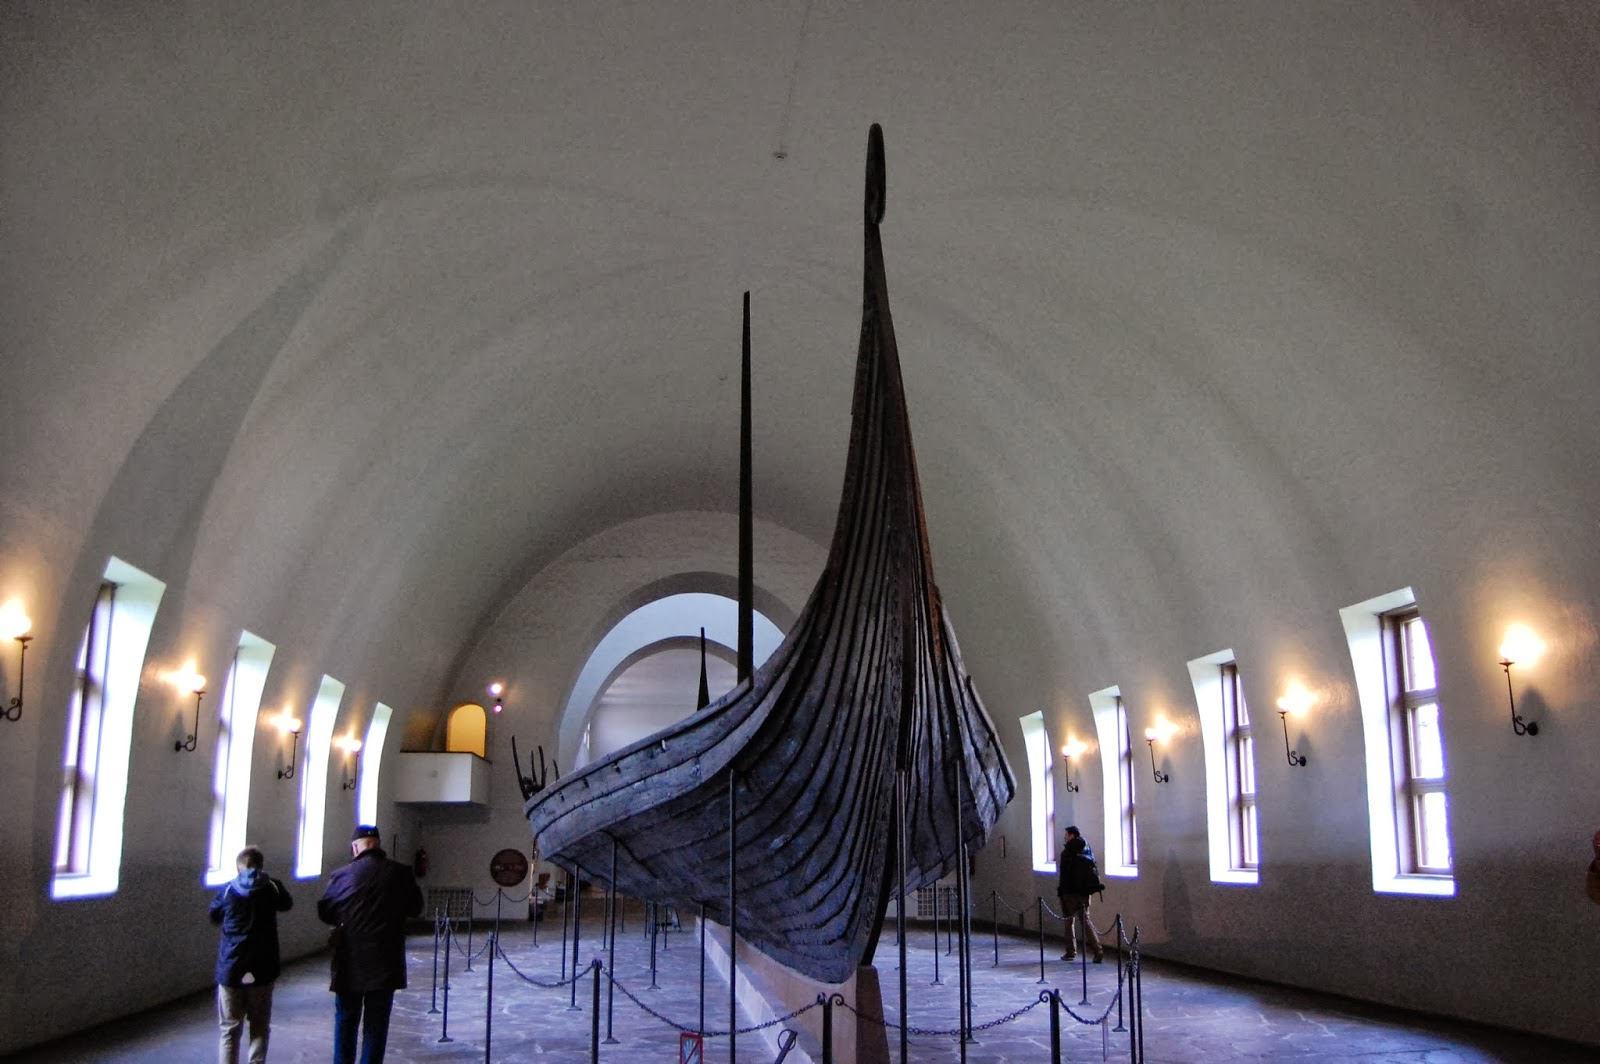 Viking Ship in the museum